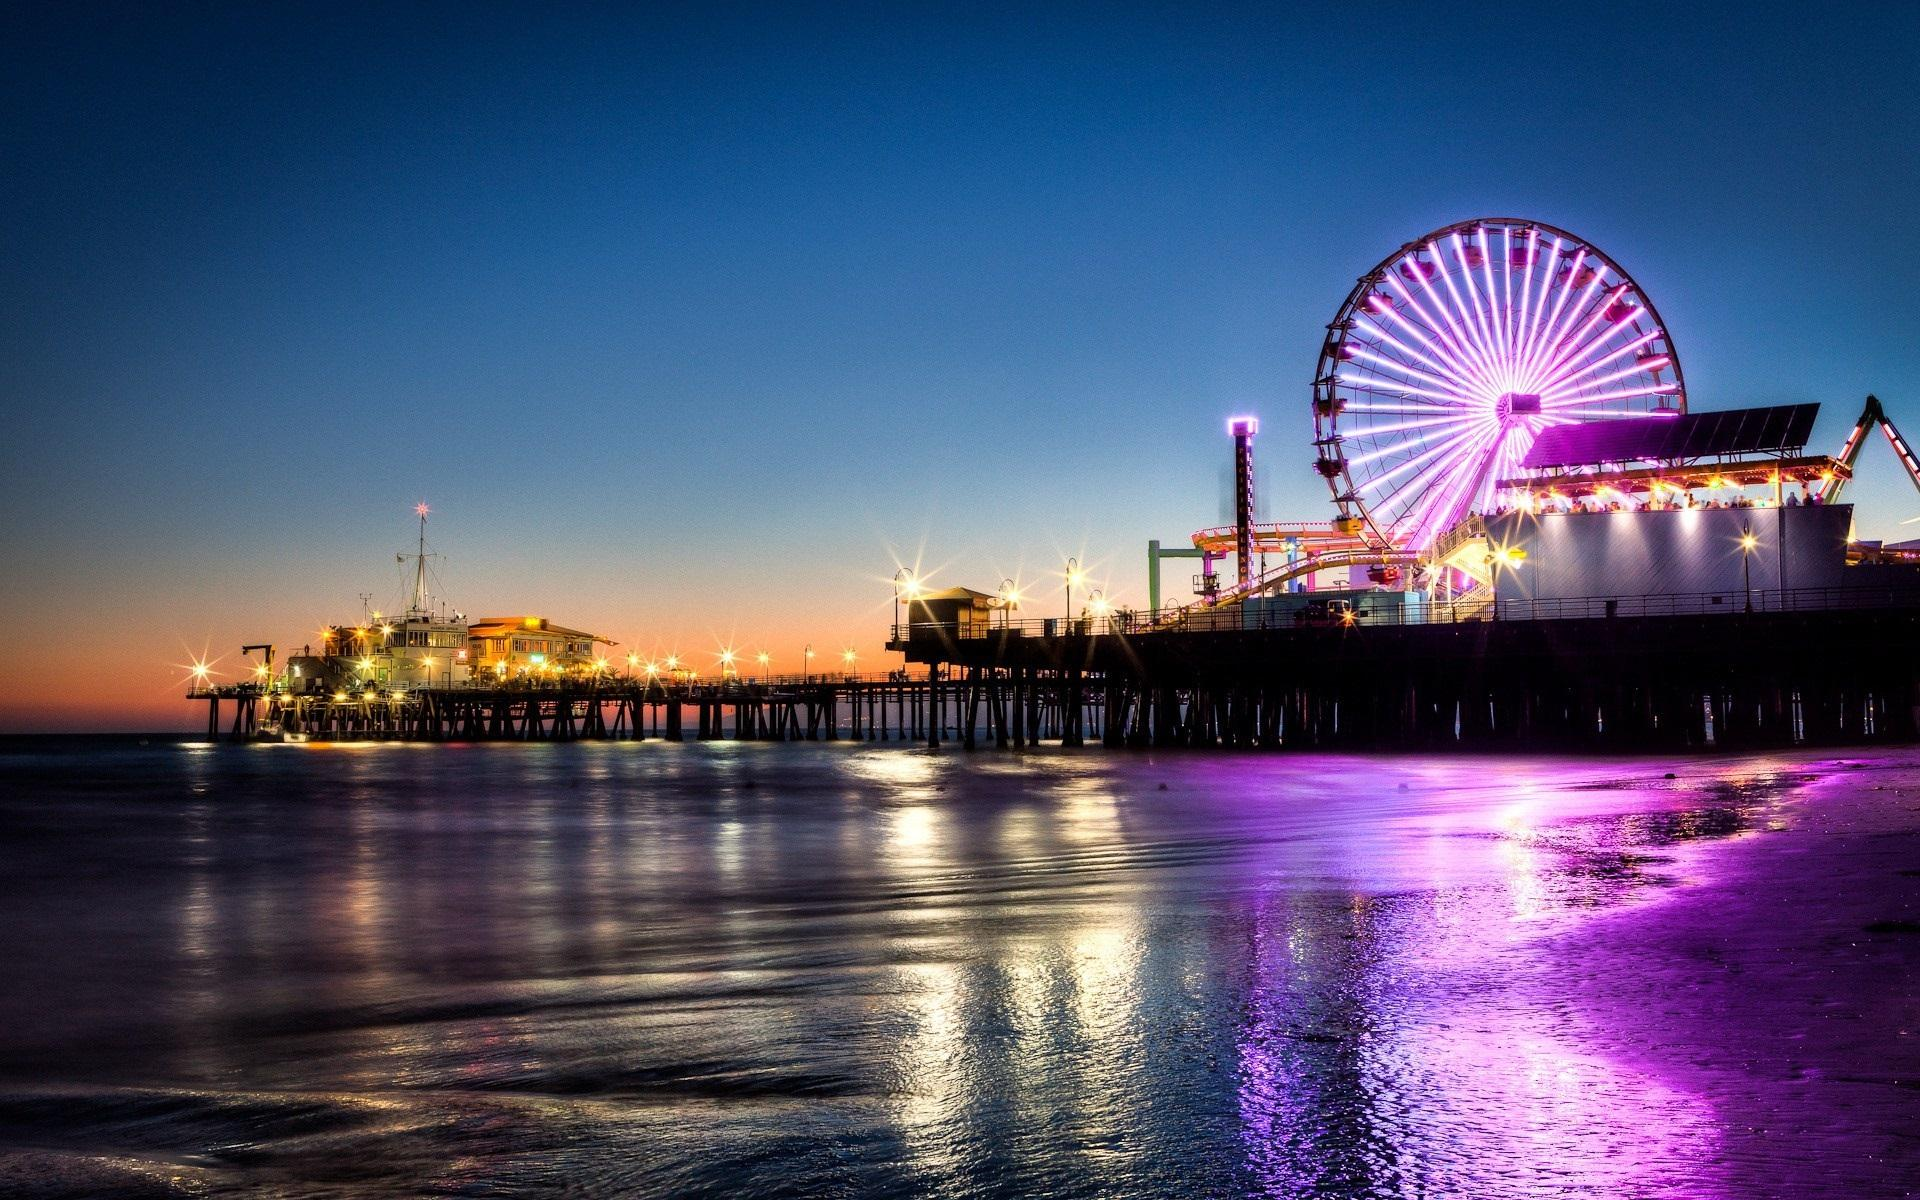 Wallpapers Santa Monica, pier, ferris wheel, night, lights, sea